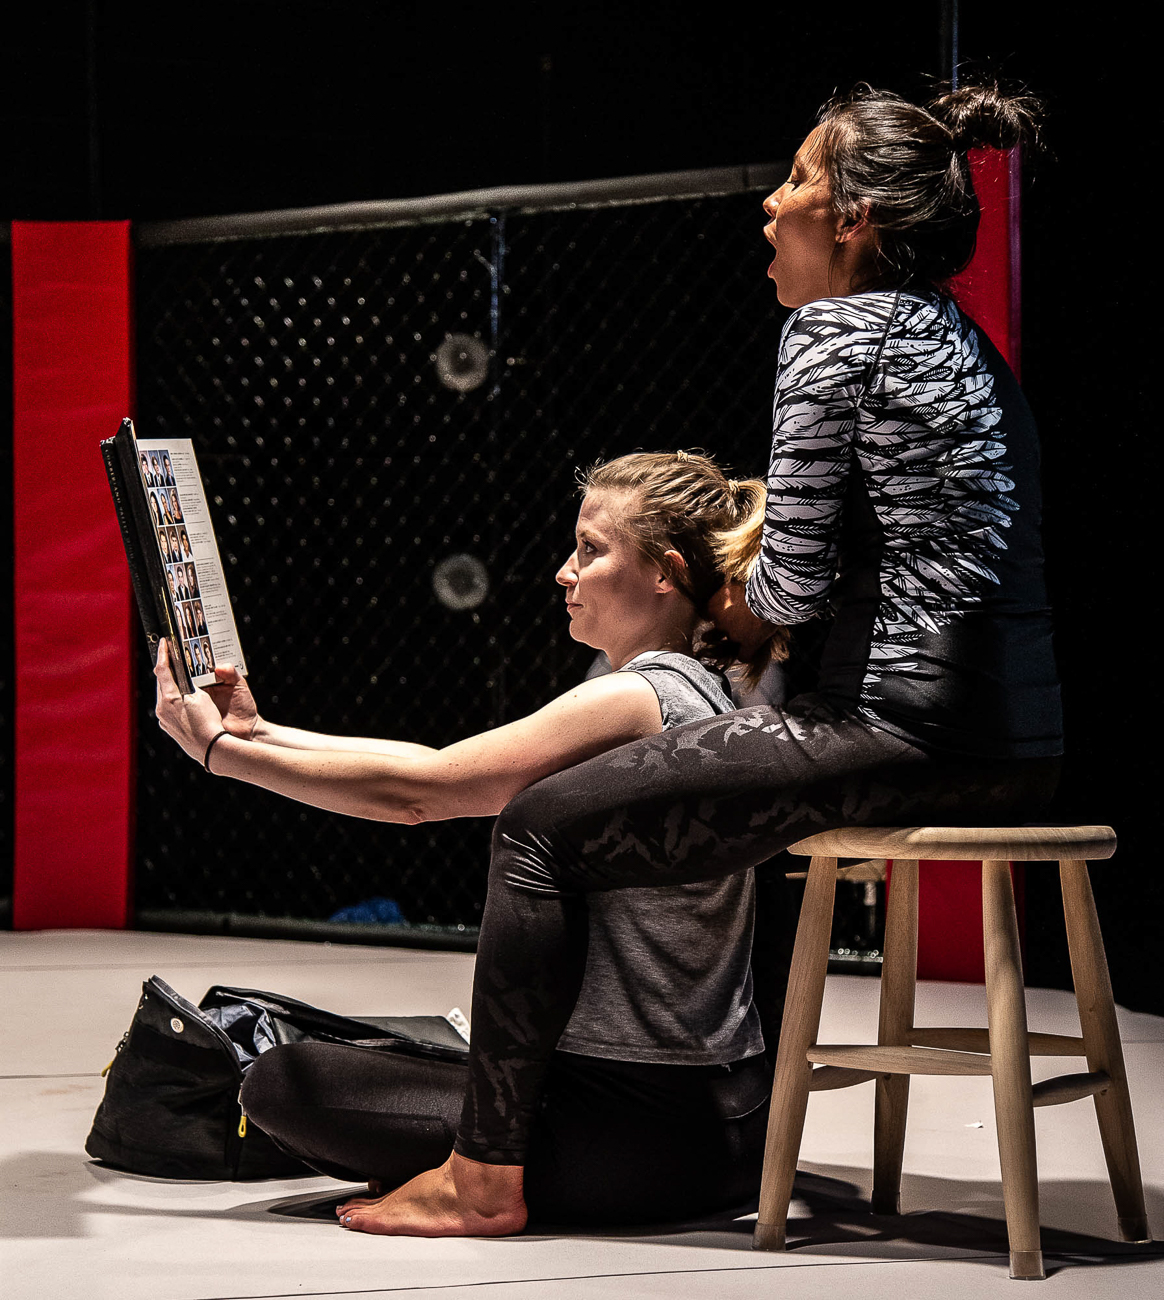 Tess Talbot and Abi Esmena / Girl in the Red Corner by Stephen Spotswood plays every Wednesday through Sunday from July 26 to August 17 at Know Theatre in Over-the-Rhine. ADDRESS: 1120 Jackson Street (45202) / Image: Daniel Winters Photography // Published: 7.31.19